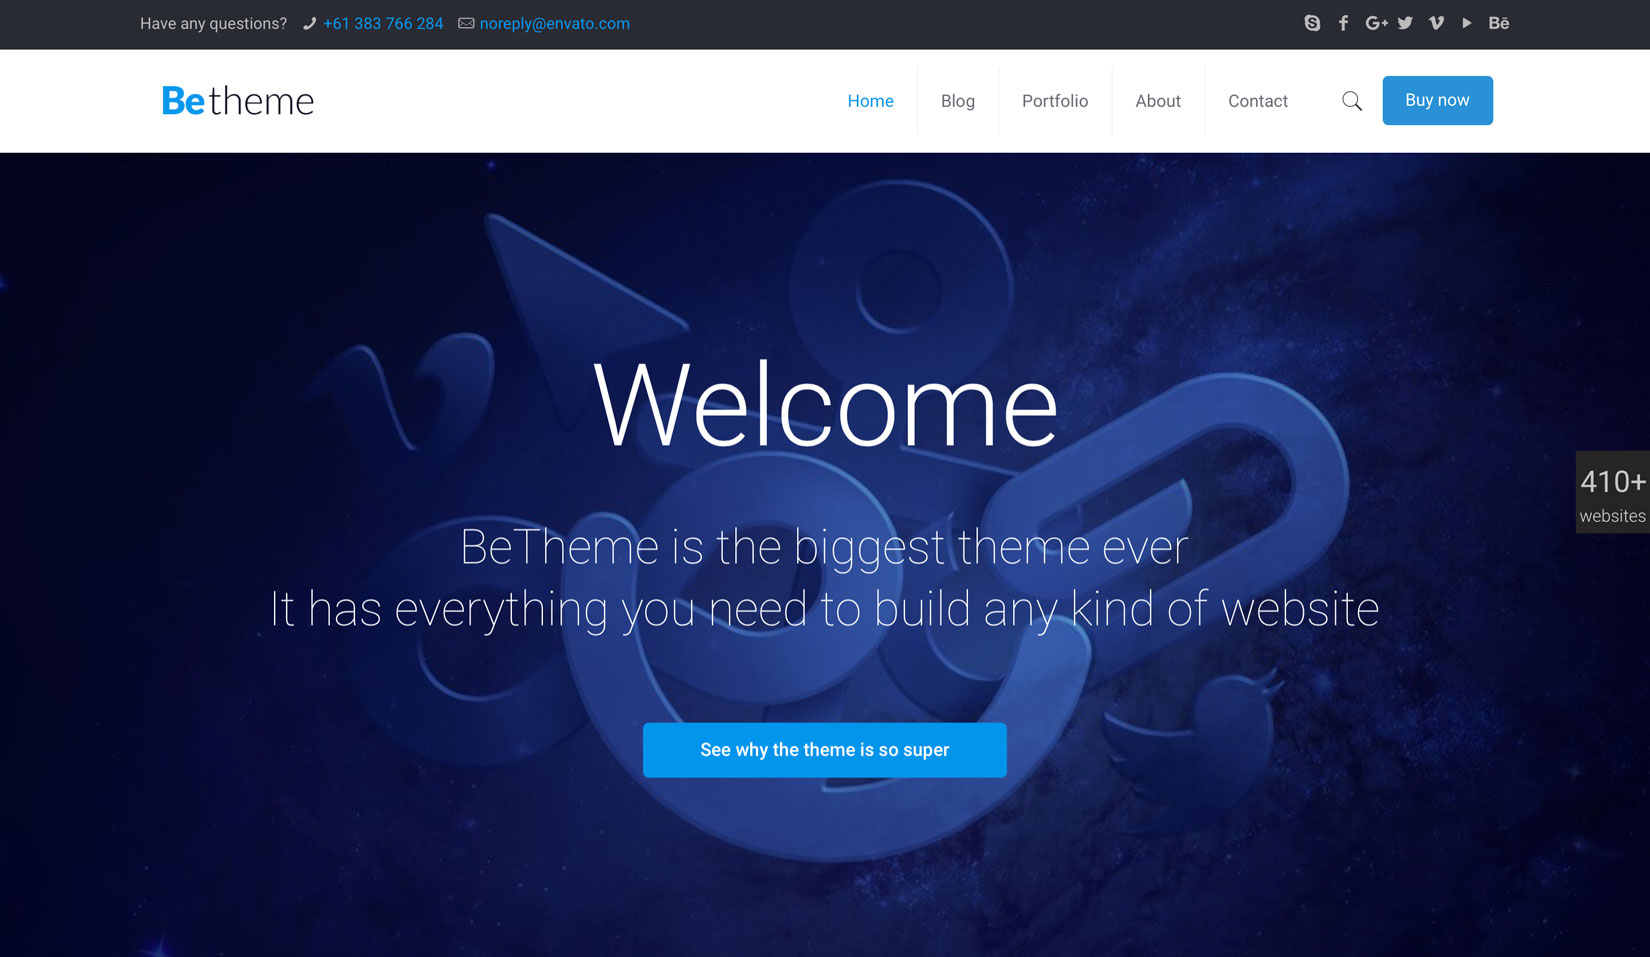 wordpress-tema-betheme